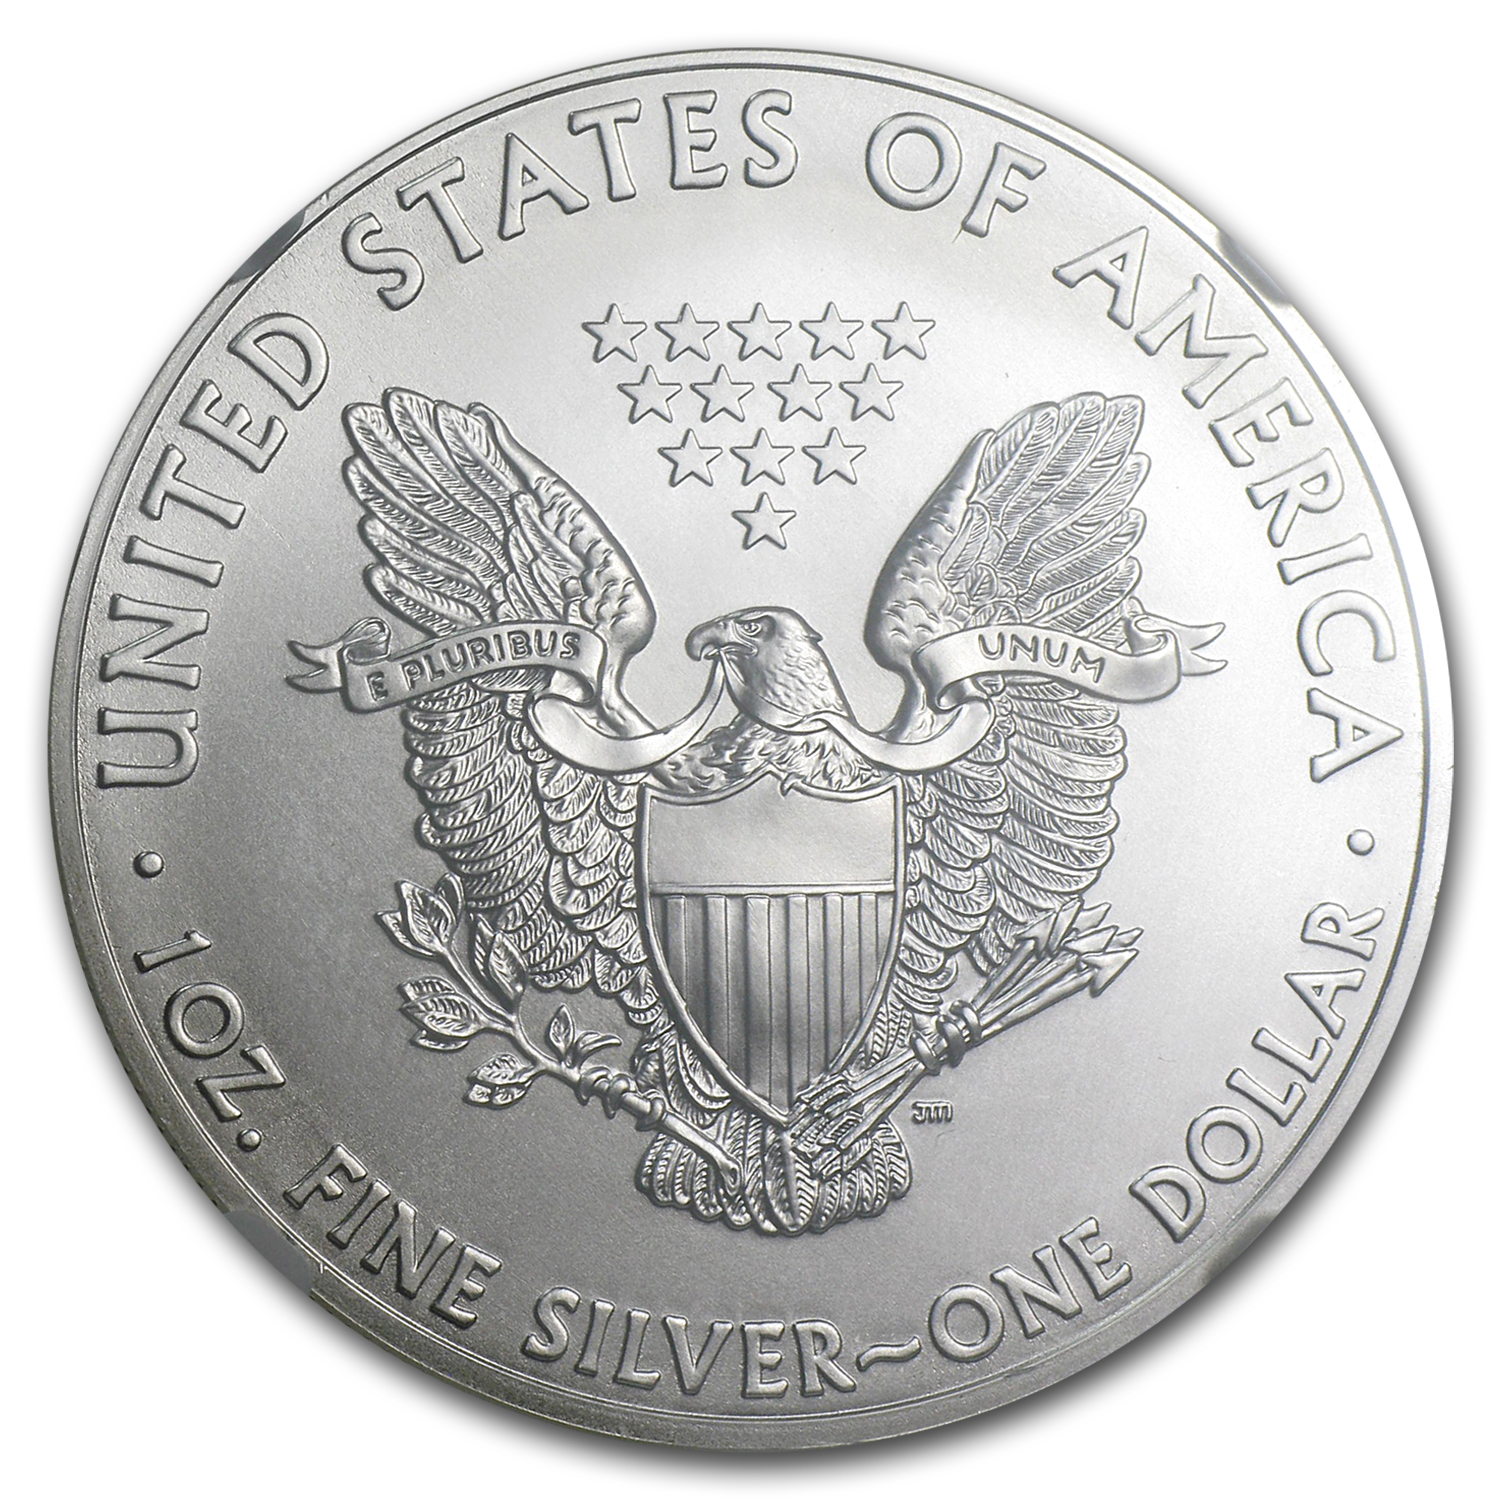 2012 Silver American Eagle Ms 70 Ngc Silver Eagles West